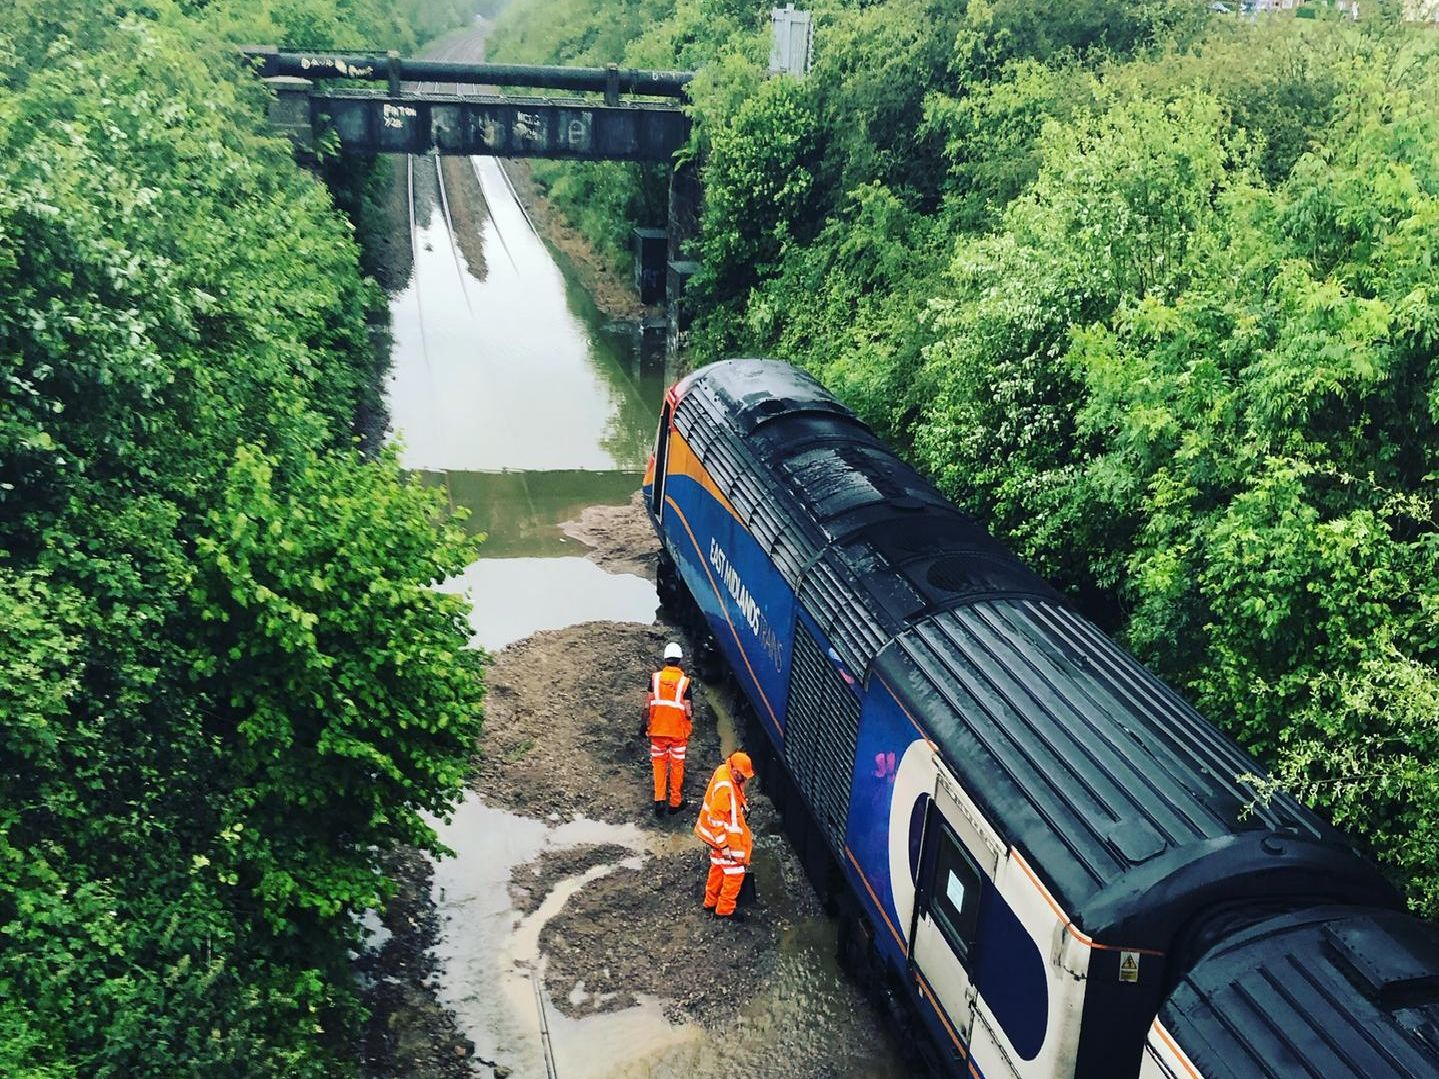 Network Rail contractors try to dig out the train